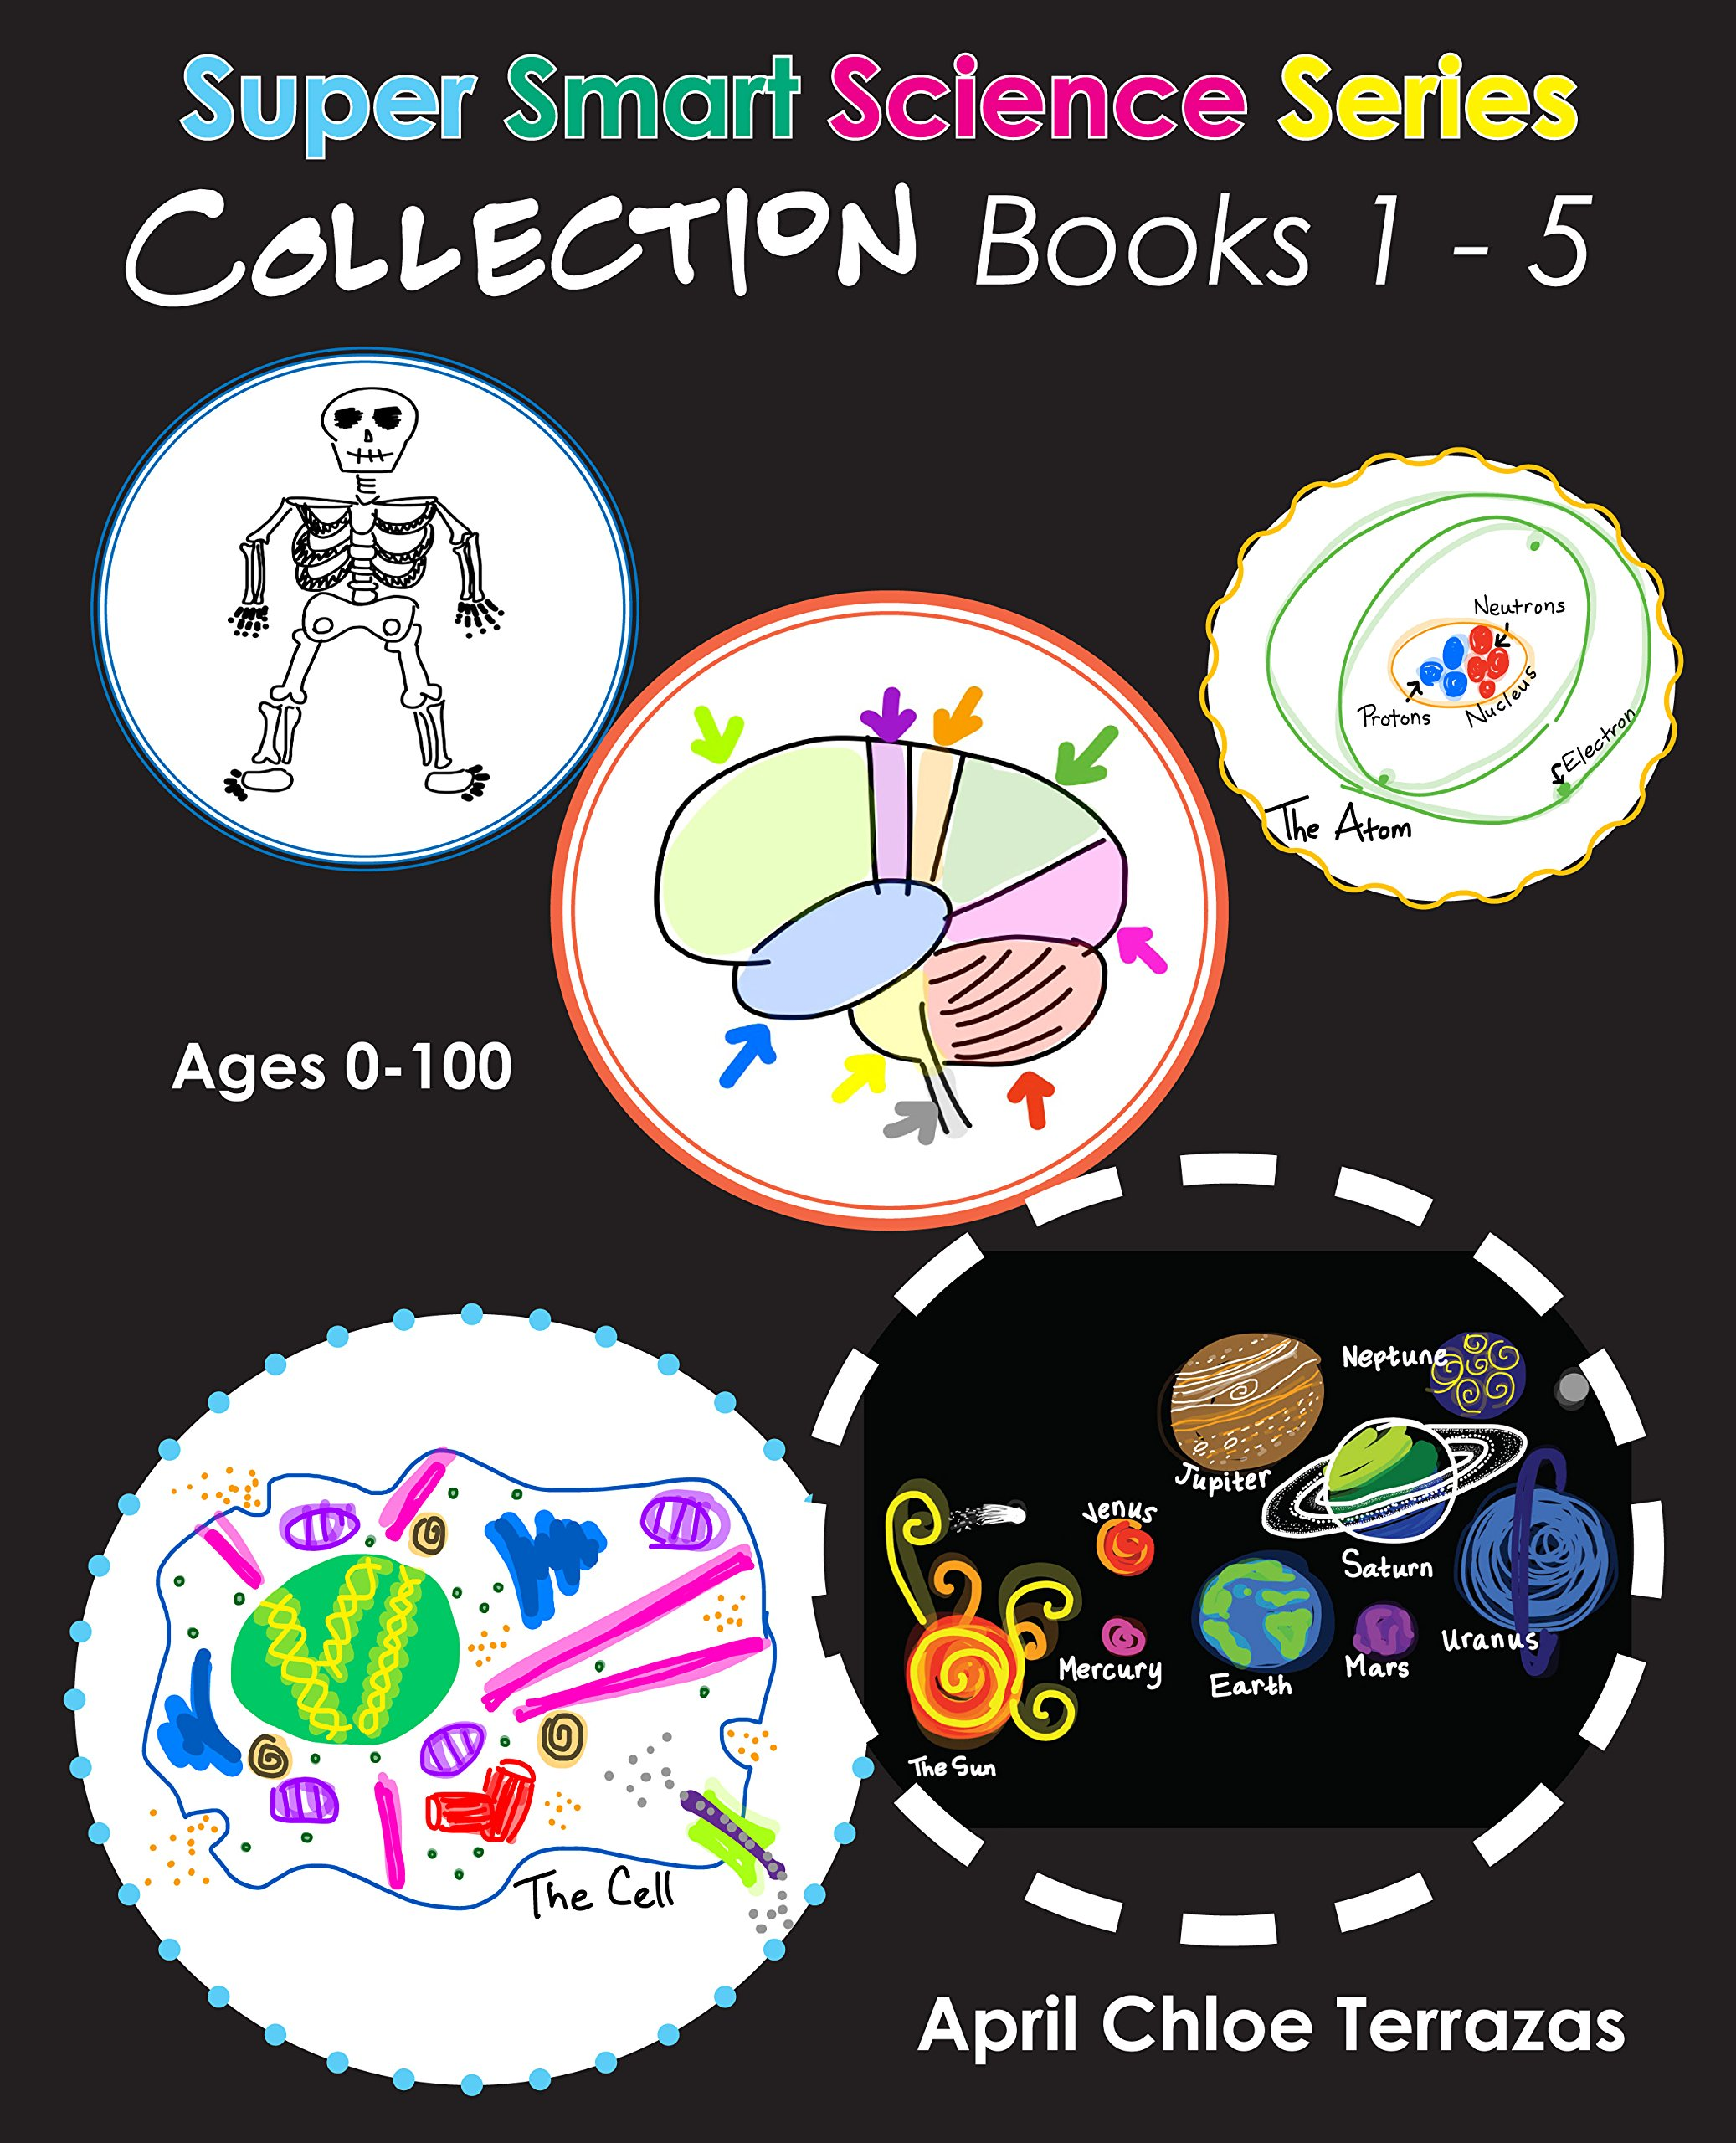 Super Smart Science Series Collection: Books 1 - 5 by Crazy Brainz (Image #2)